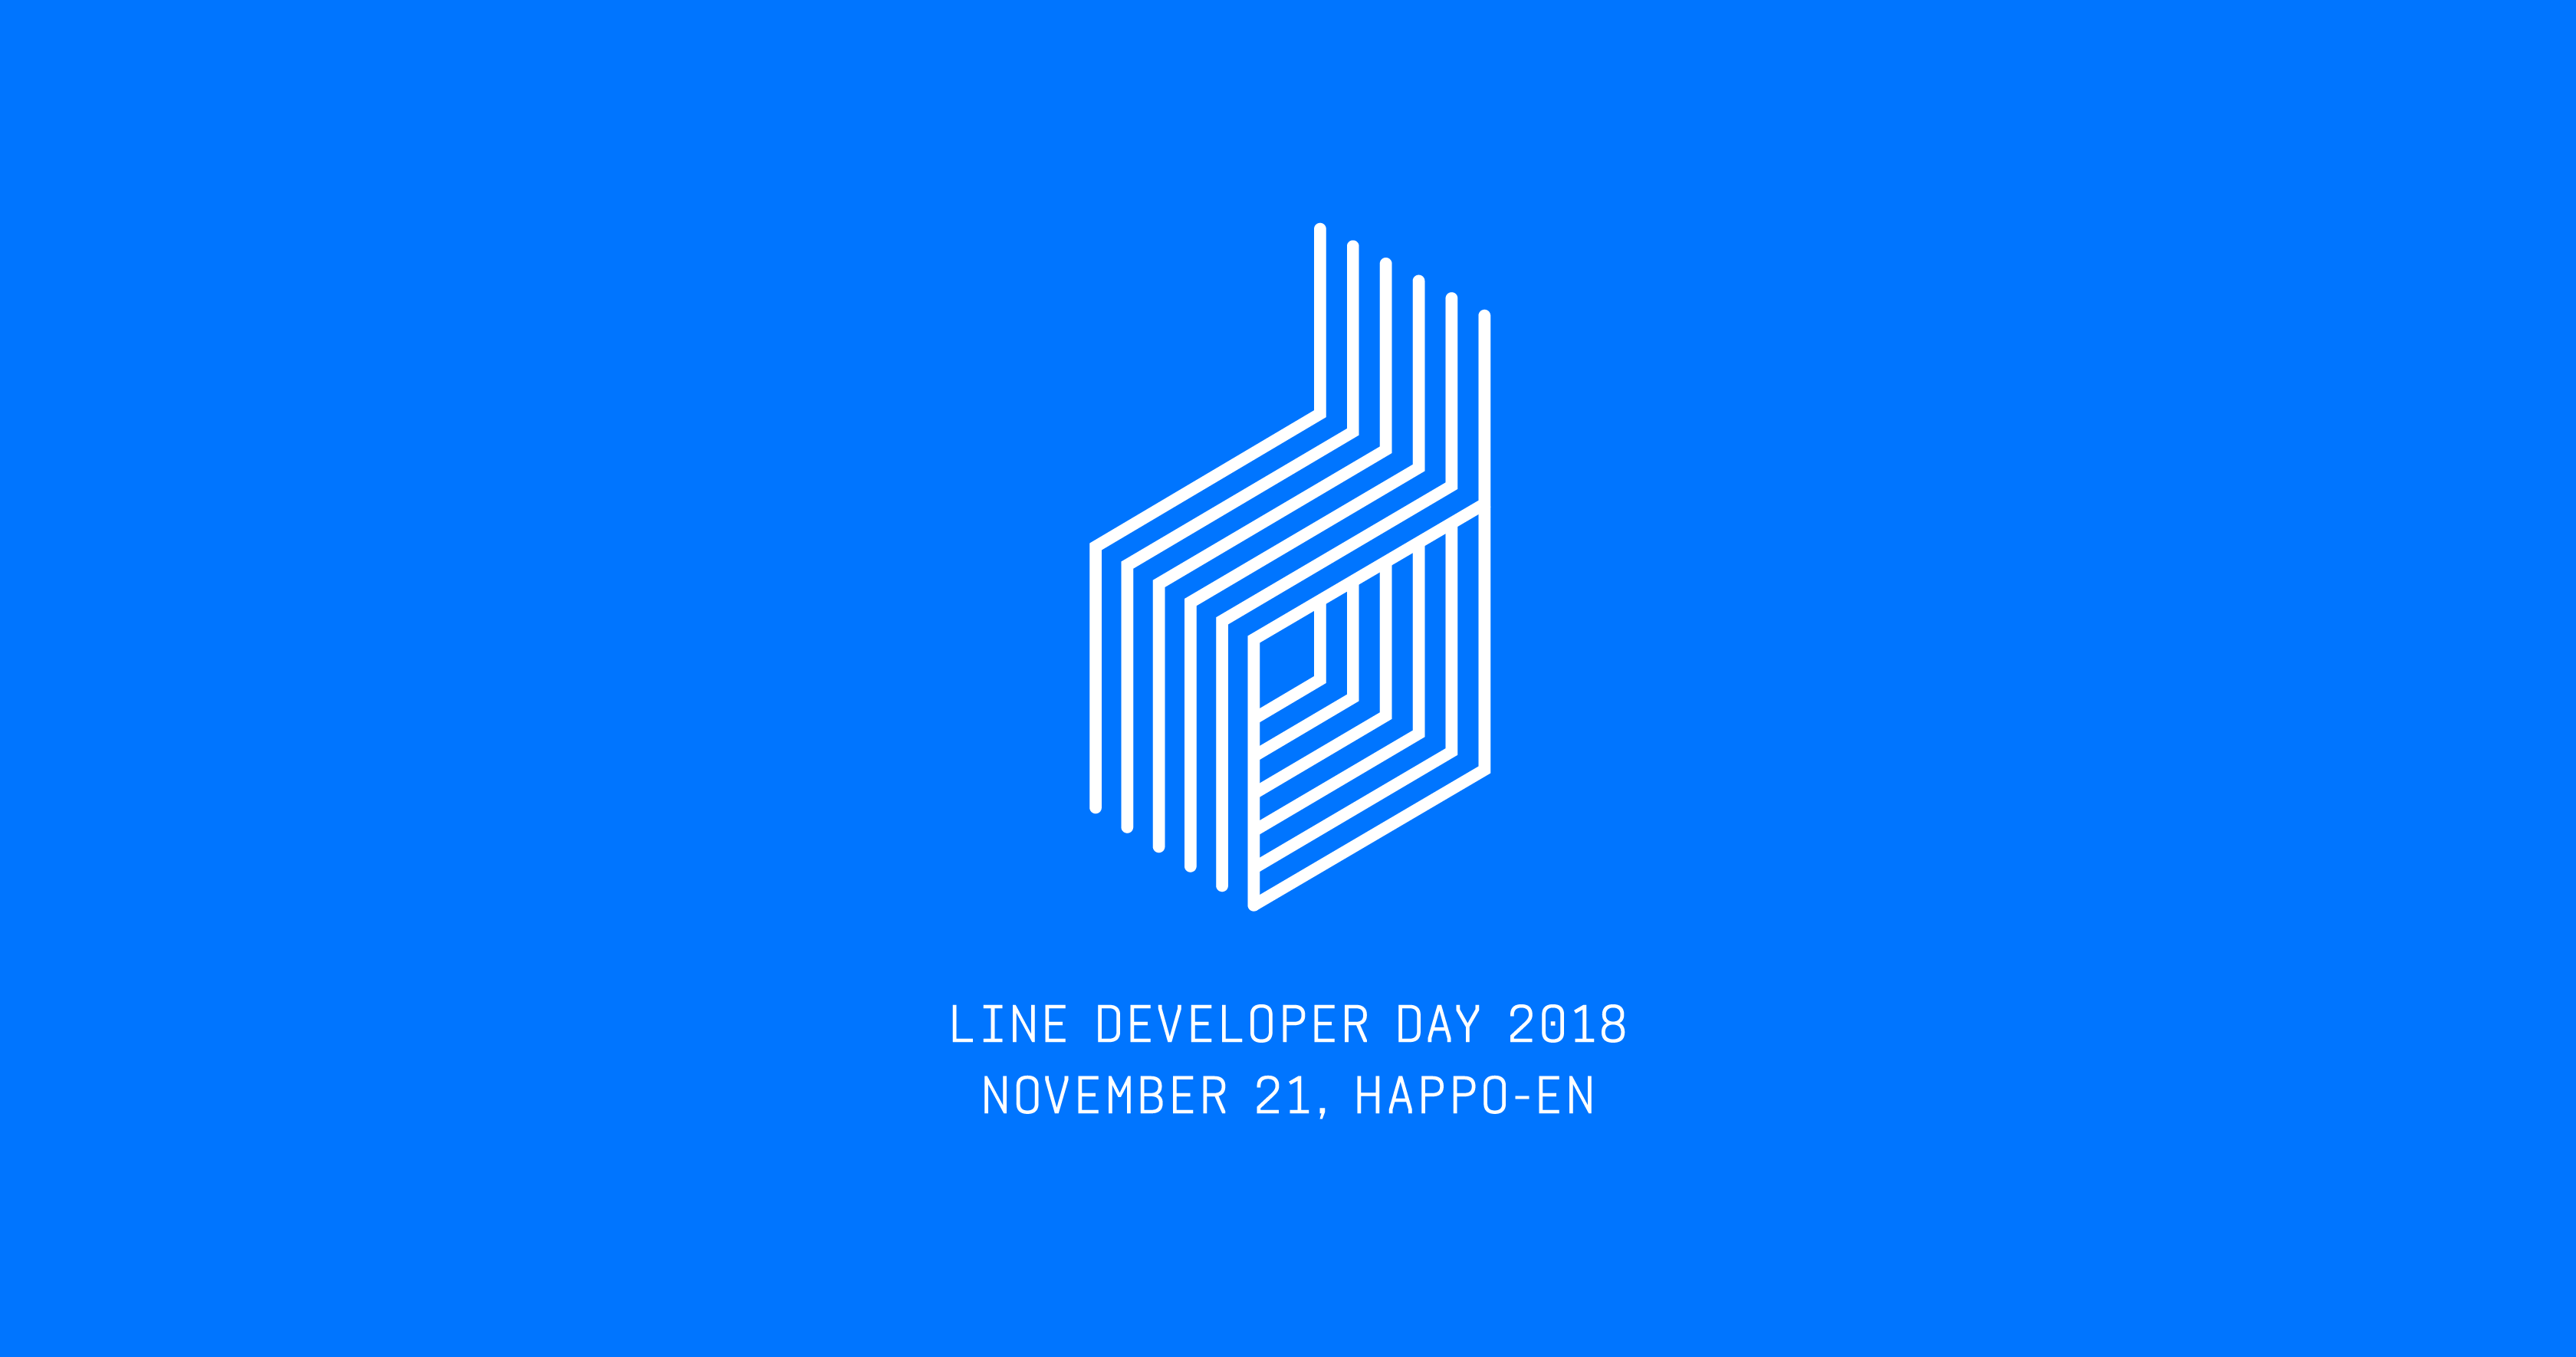 /stf/linecorp/en/pr/PRrelease20180907_02mainimg_devday2018.png